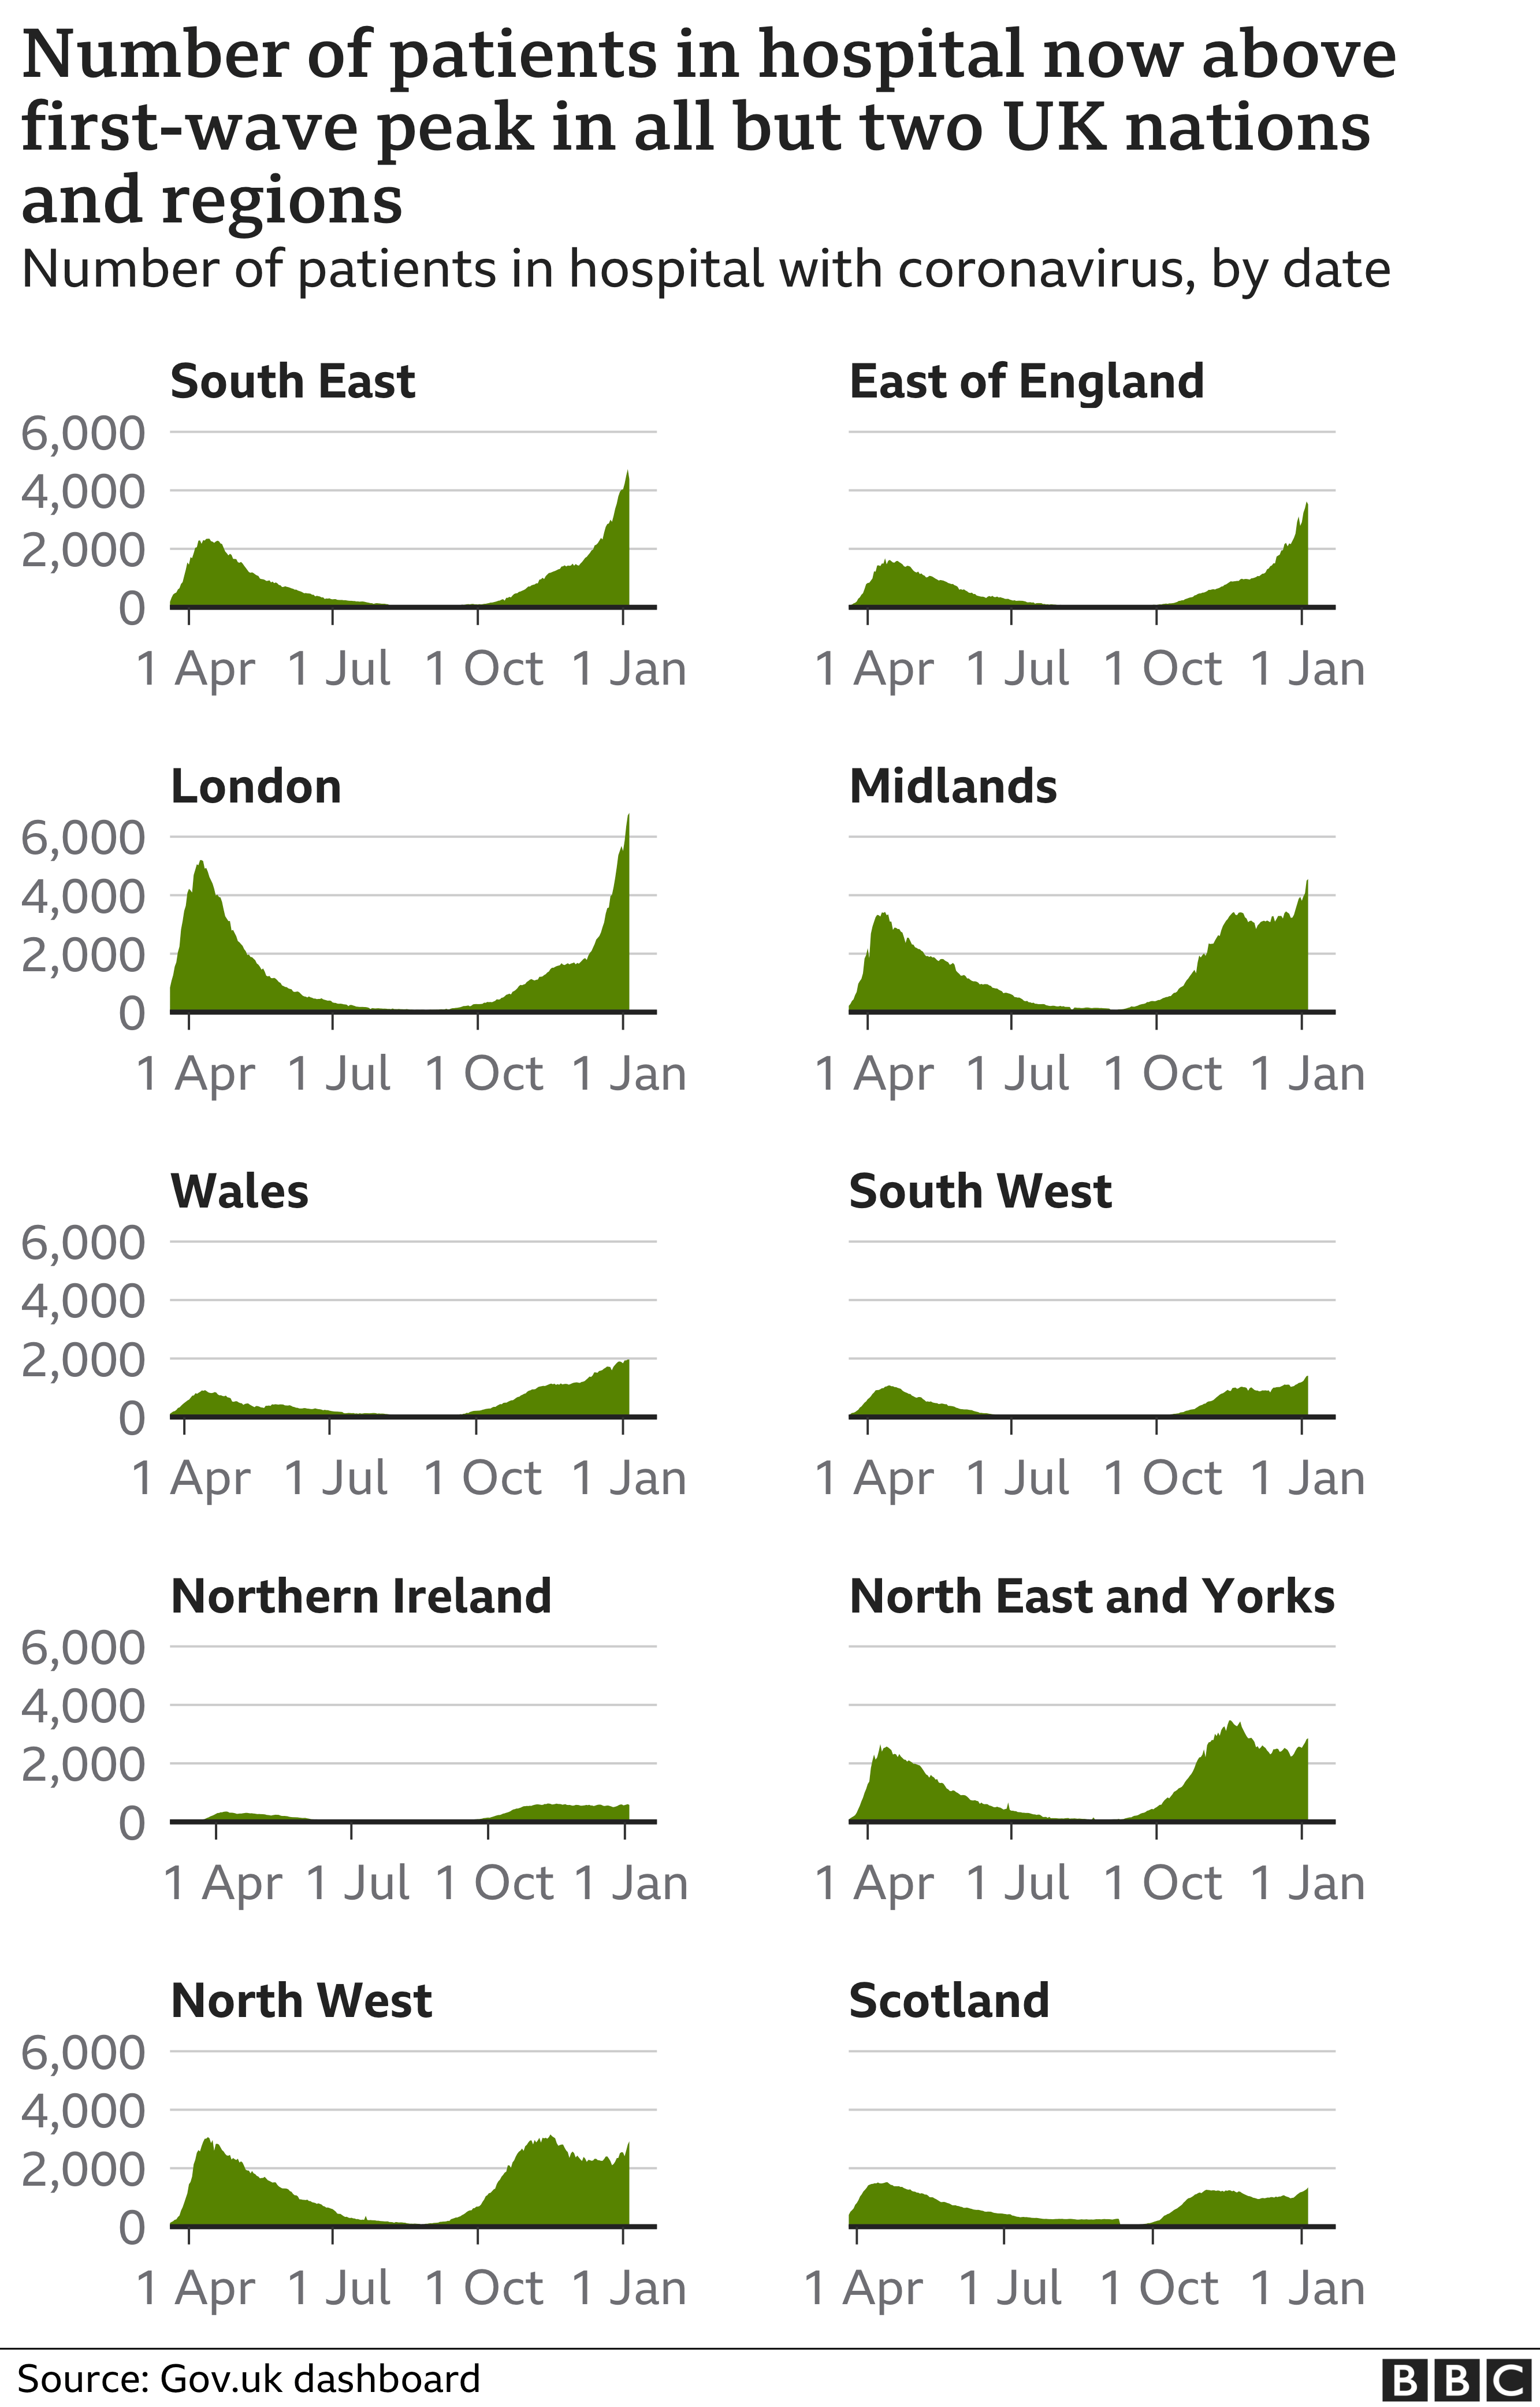 Chart shows hopsital admissions by nation and region